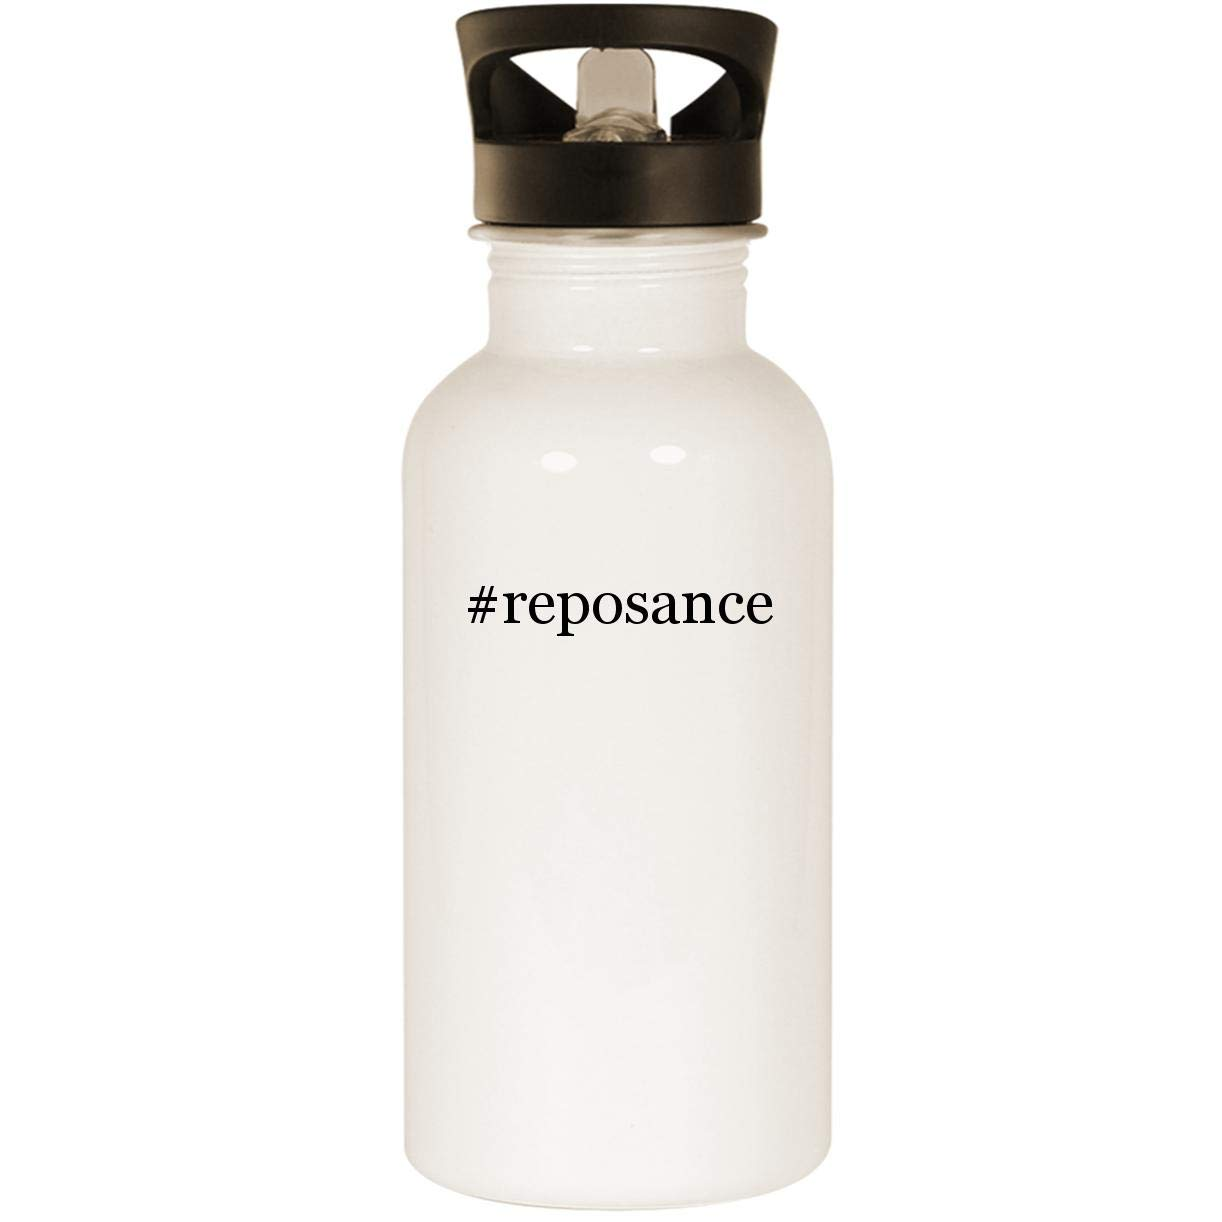 #reposance - Stainless Steel 20oz Road Ready Water Bottle, White